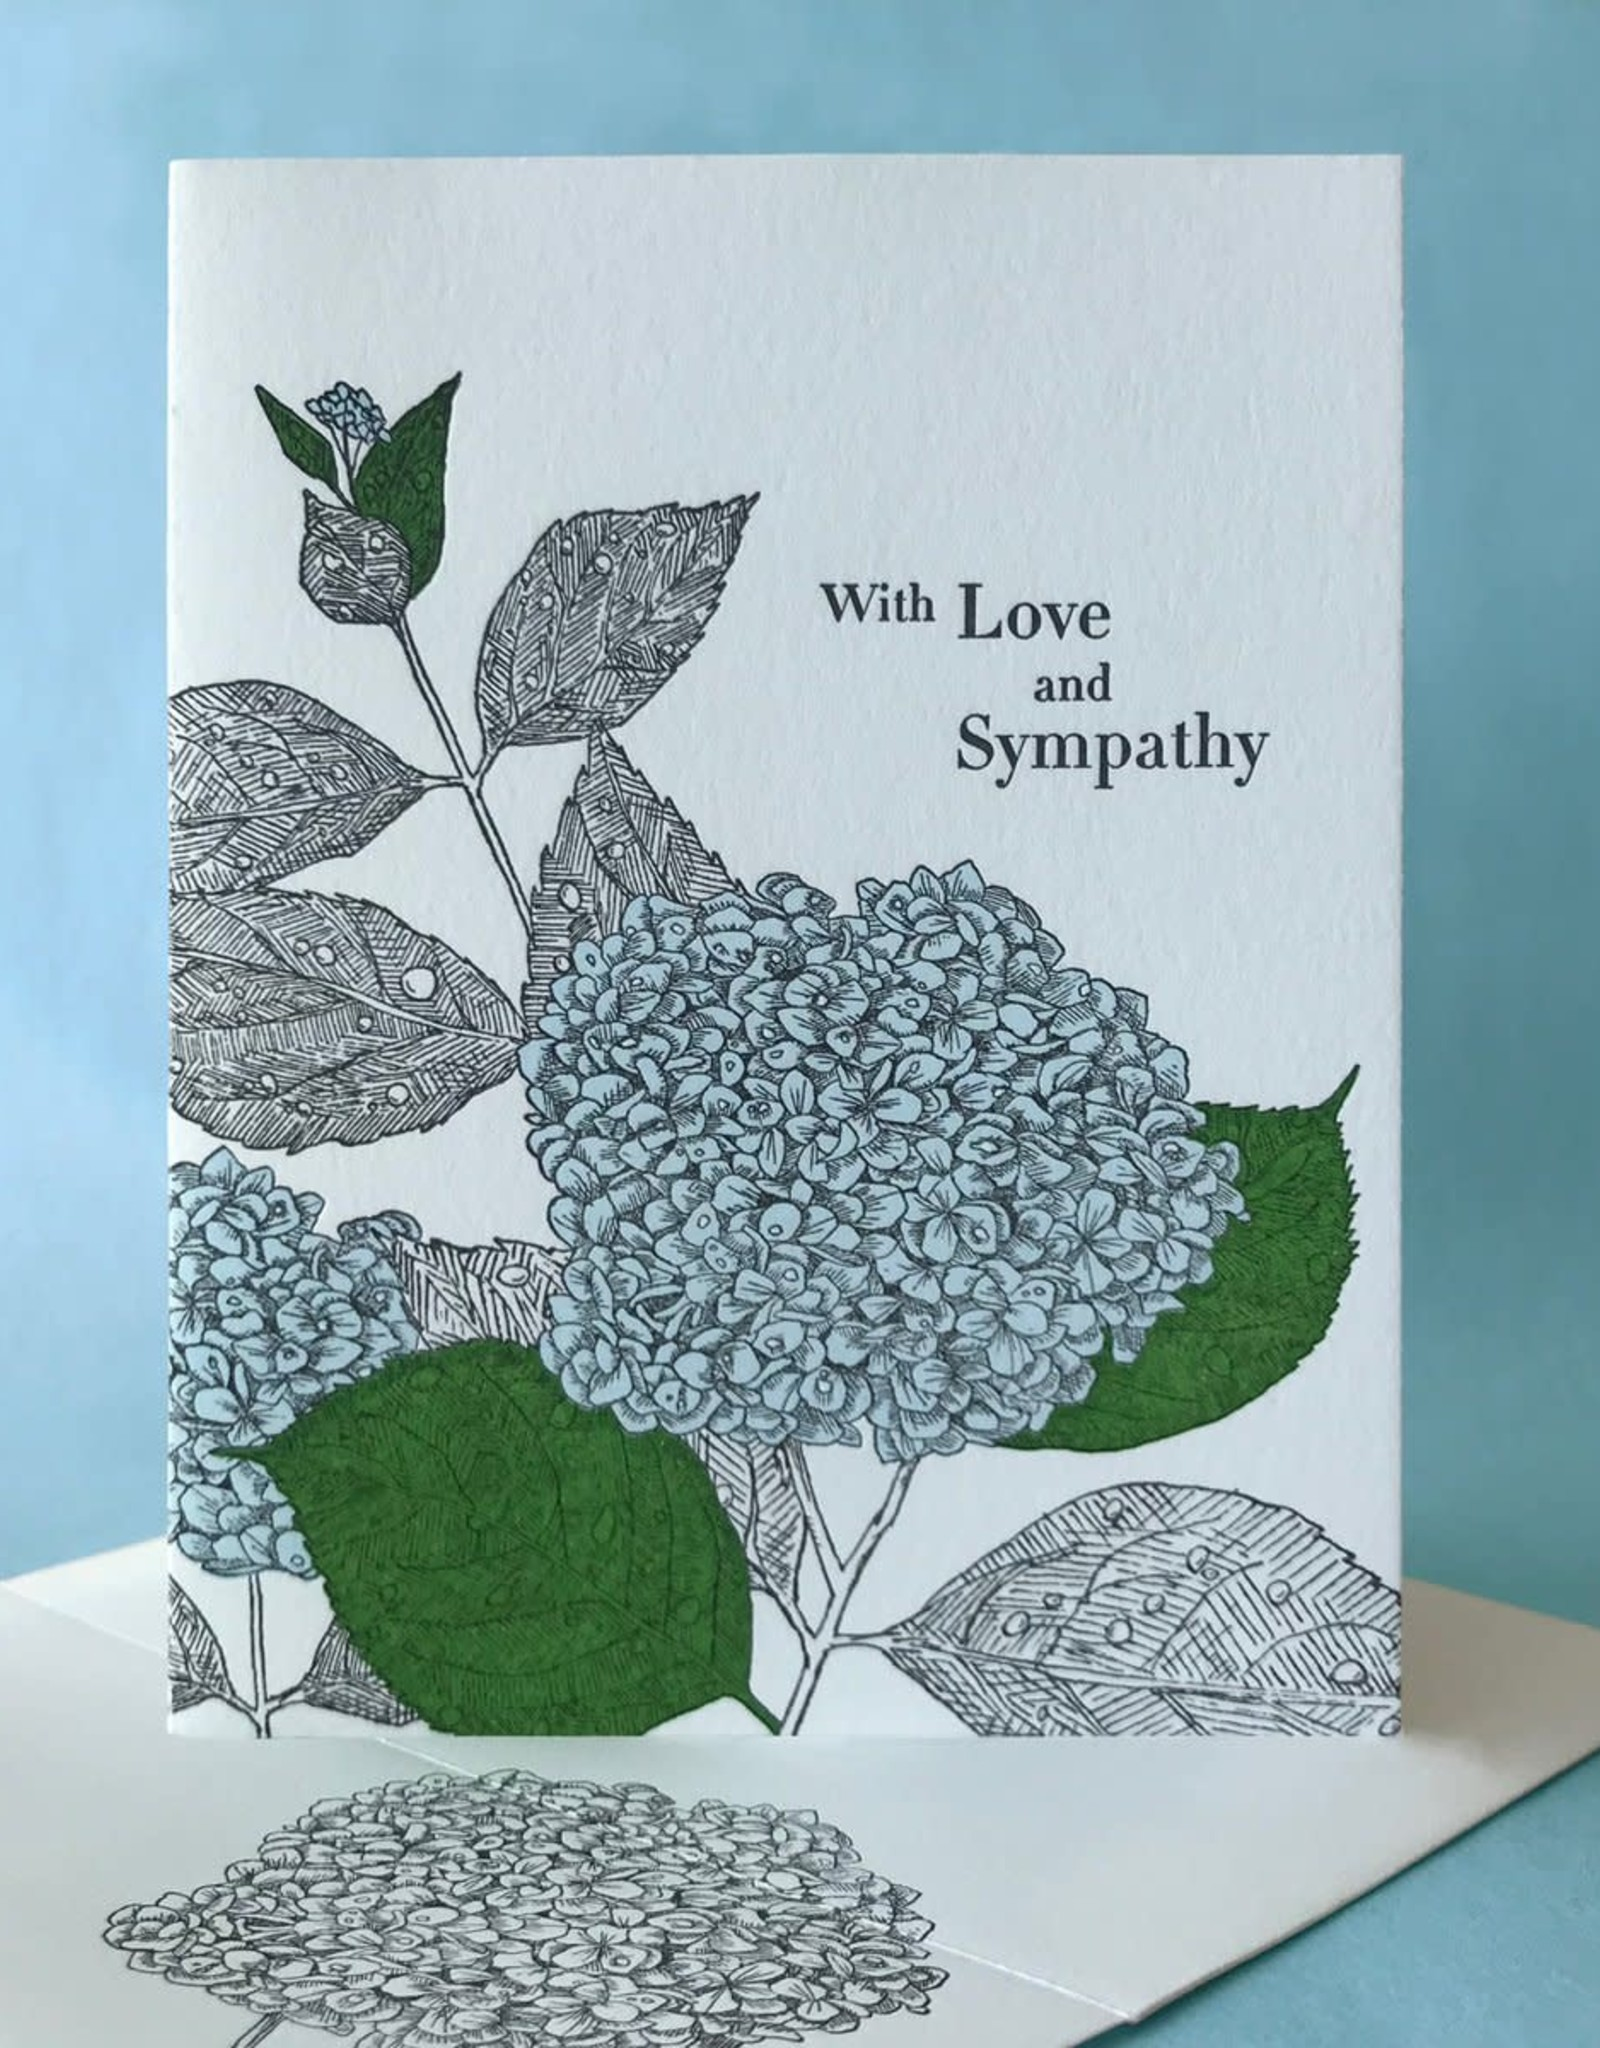 With Love and Sympathy (Hydrangea) Greeting Card